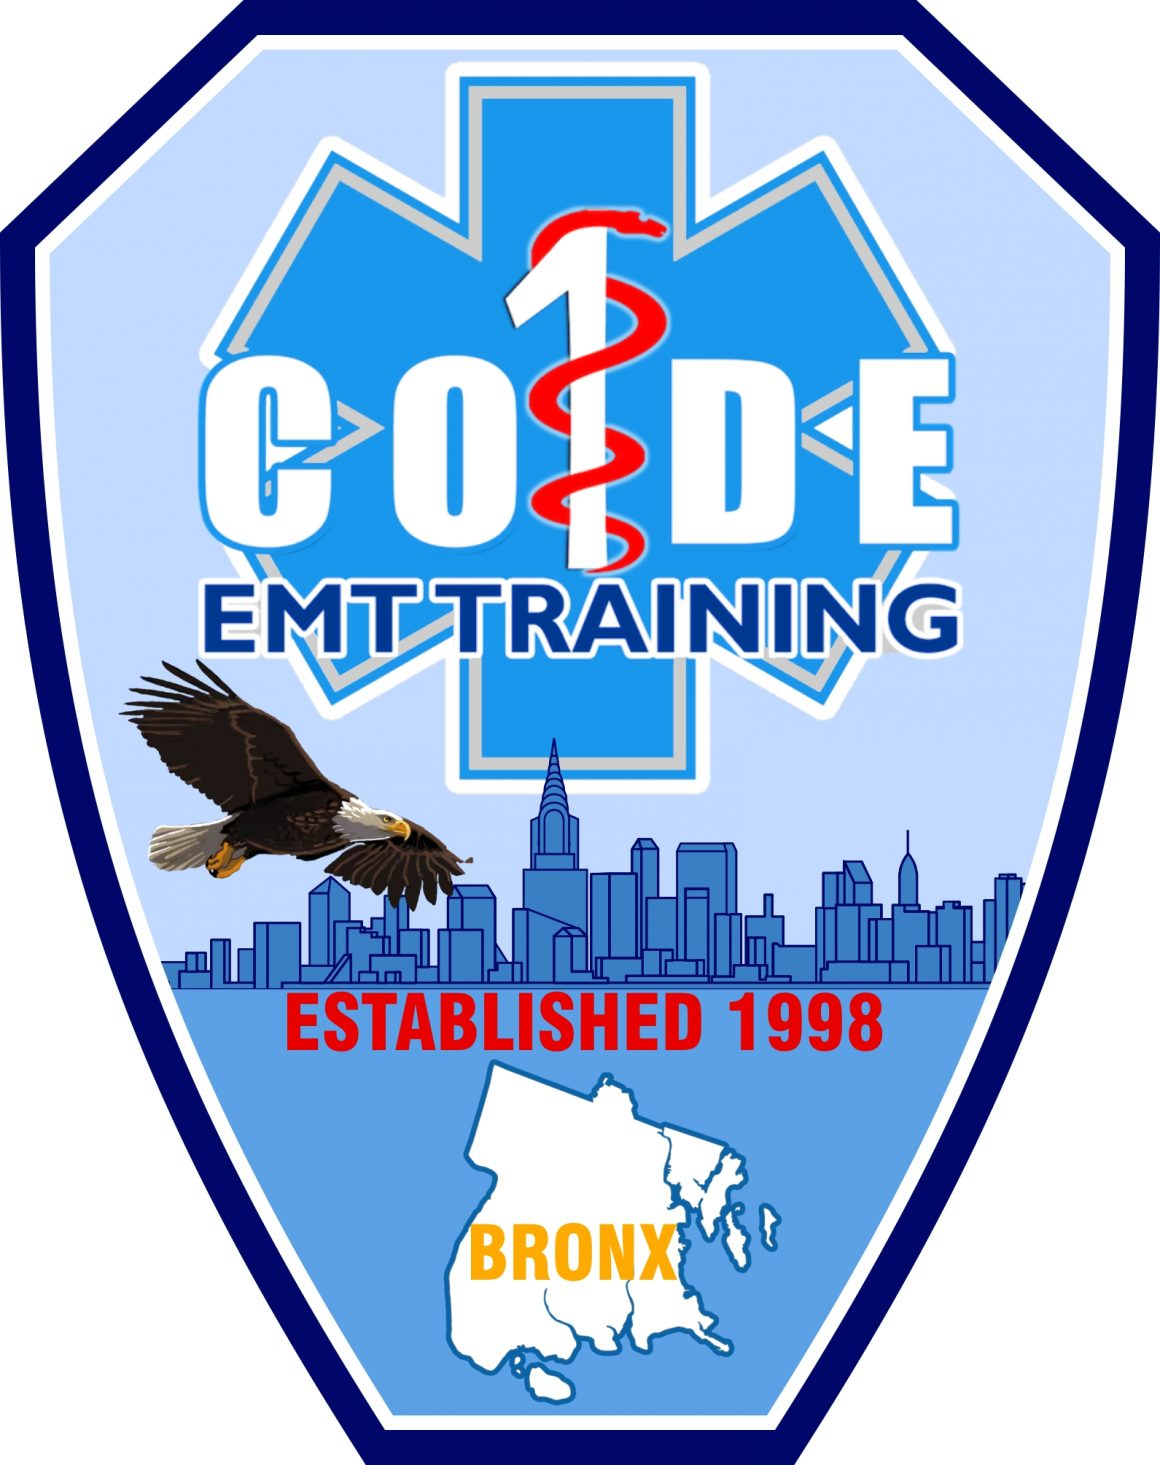 Code One Inc Original EMT Course – SEPTEMBER 23, 2019 – JANUARY 16, 2020 – AFTERNOON 2:15pm – 5:15pm @ Code One Inc